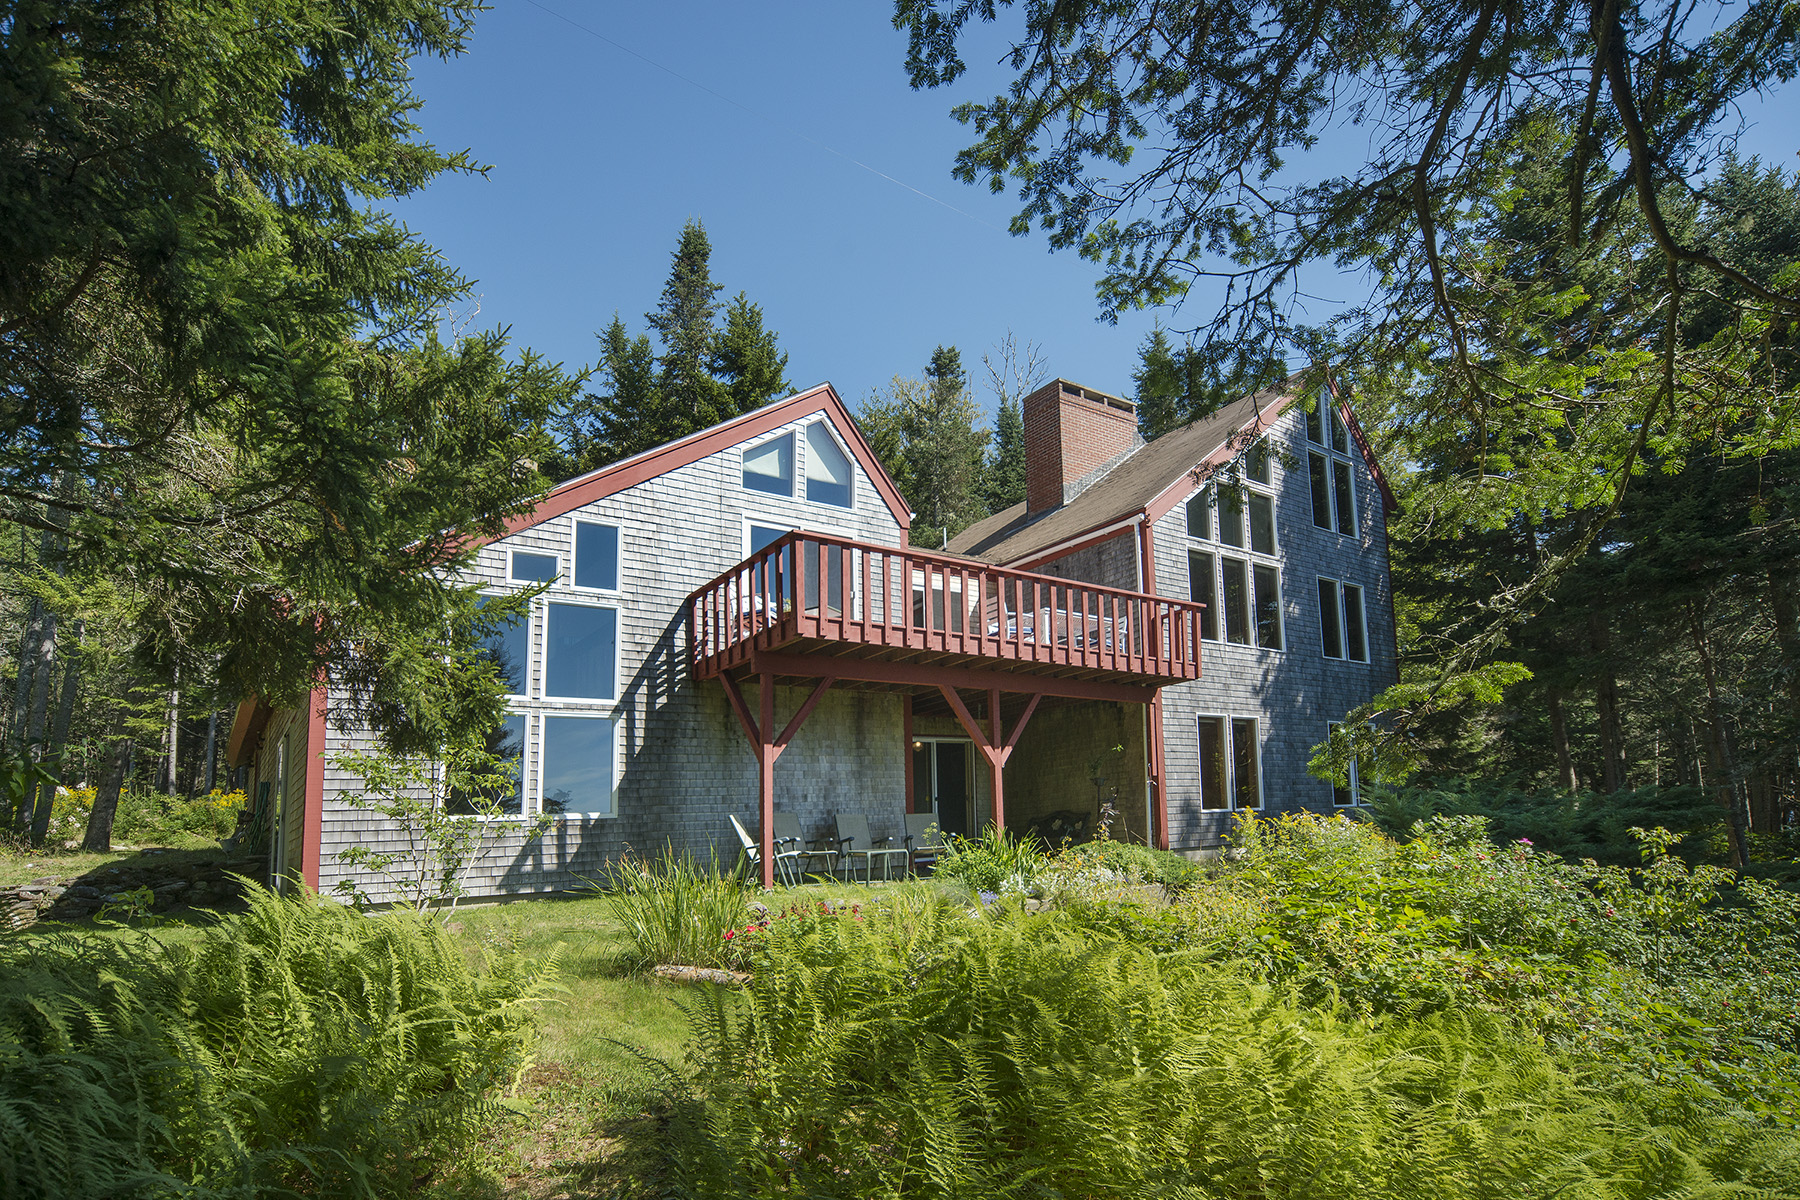 Single Family Home for Sale at 24 Baycrest Lane Stockton Springs, Maine, 04981 United States